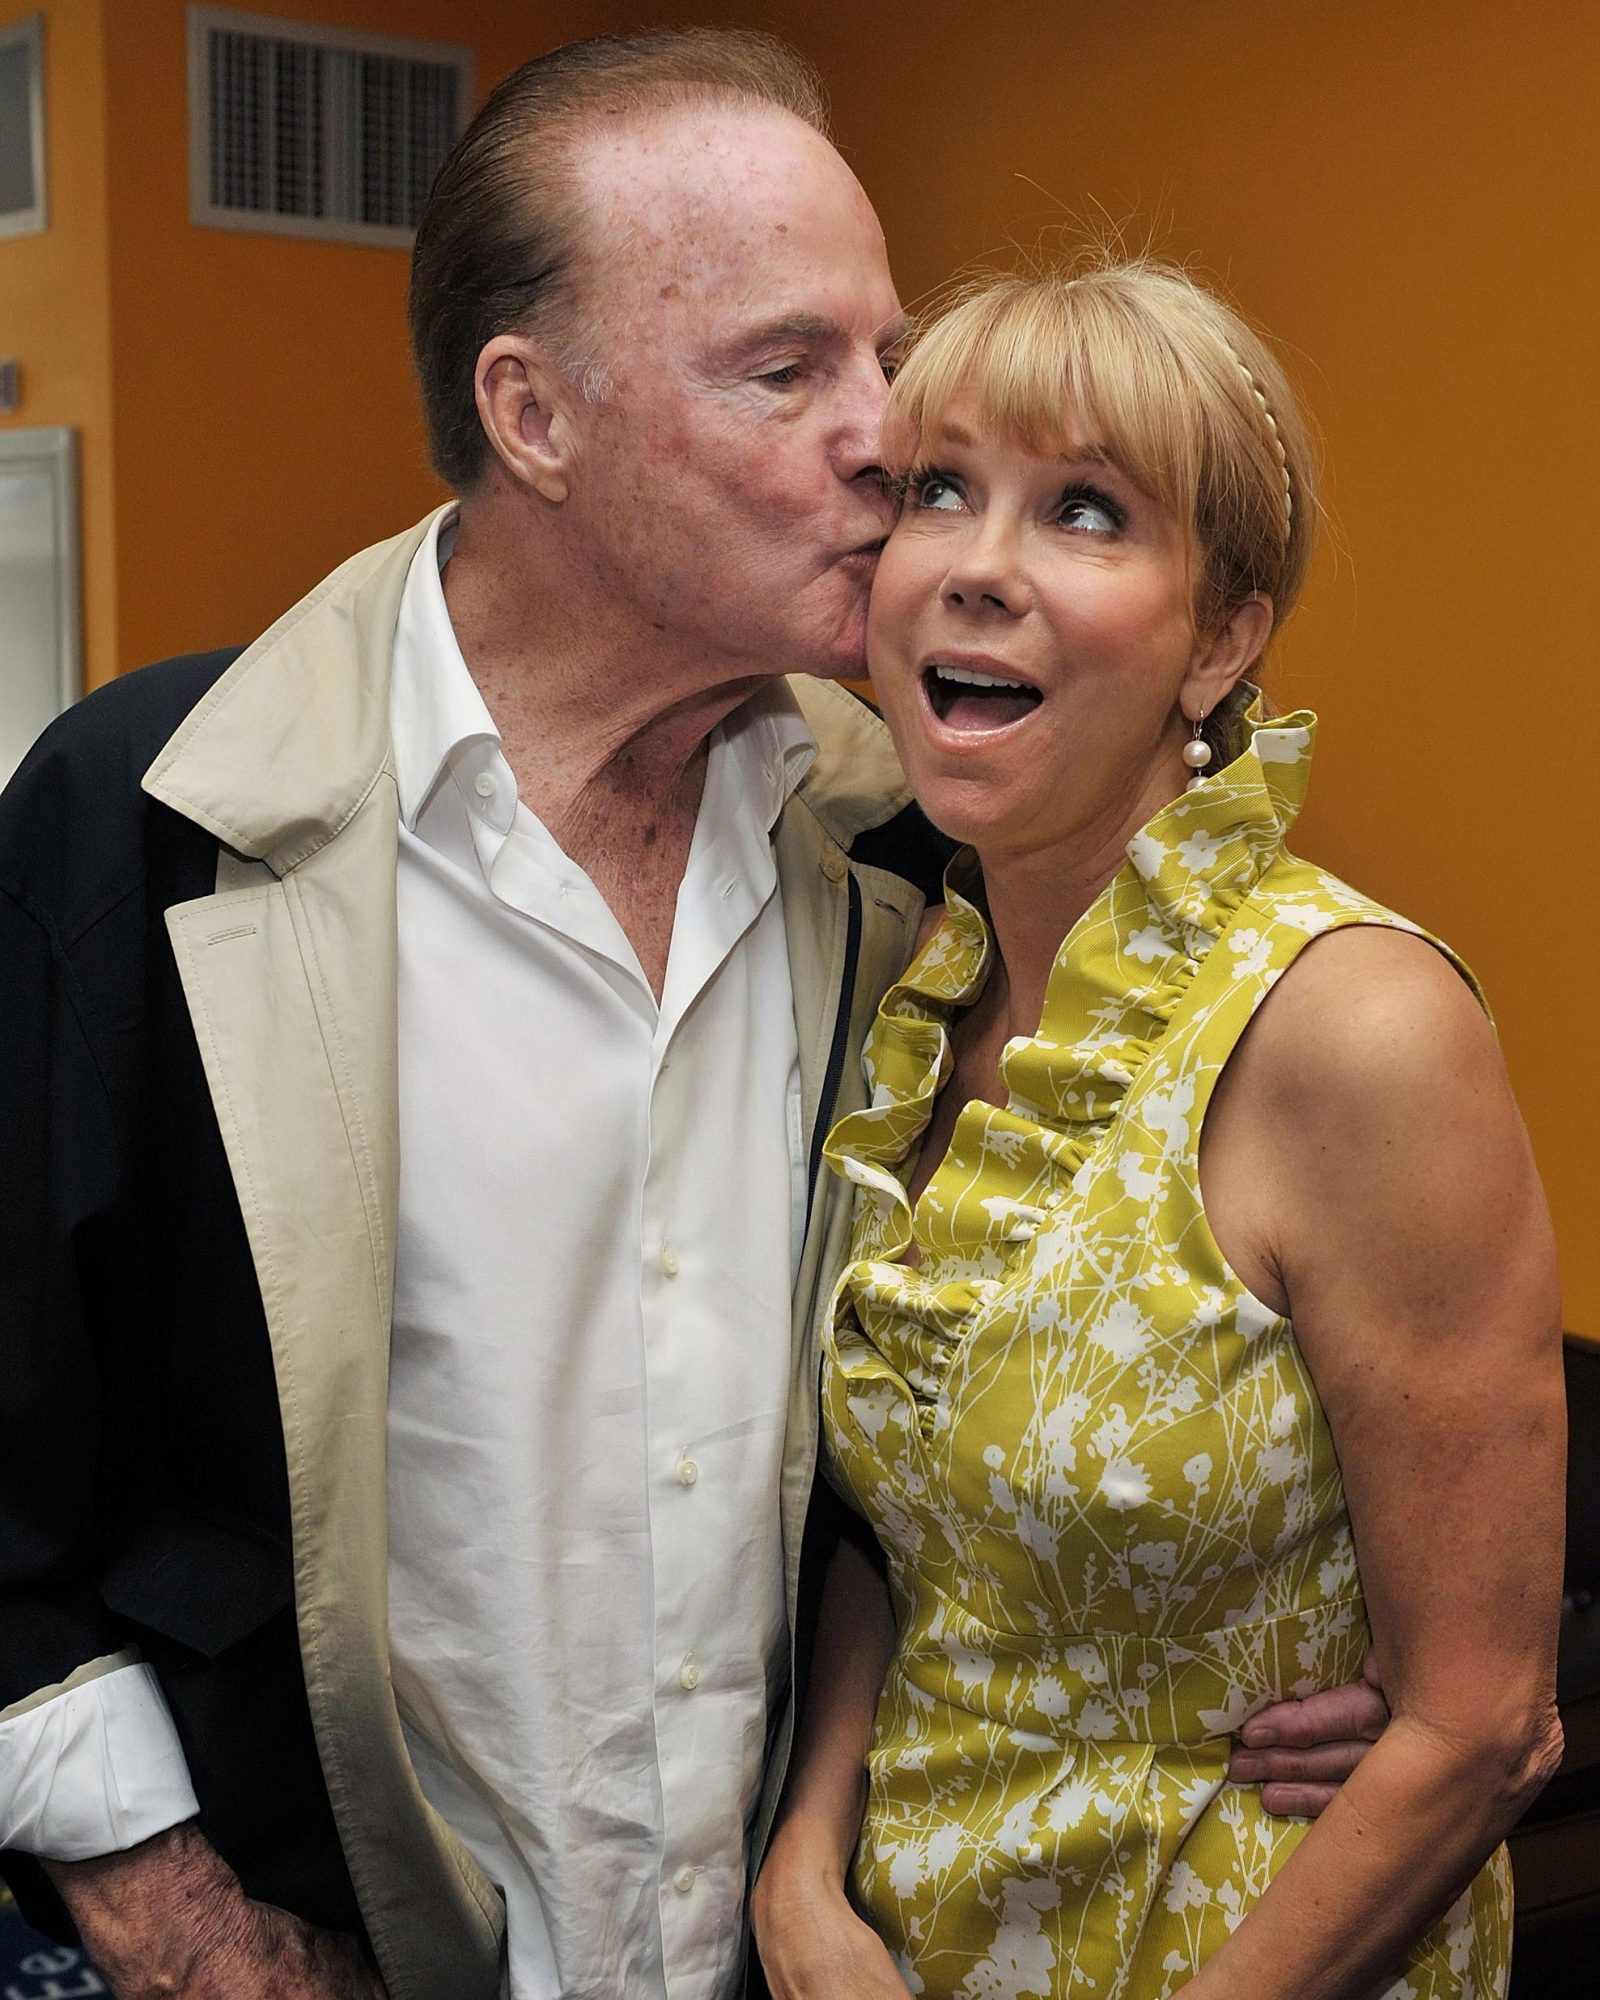 kathy-lee-gifford-frank-gifford-iconic-hollywood-couples-0216.jpg